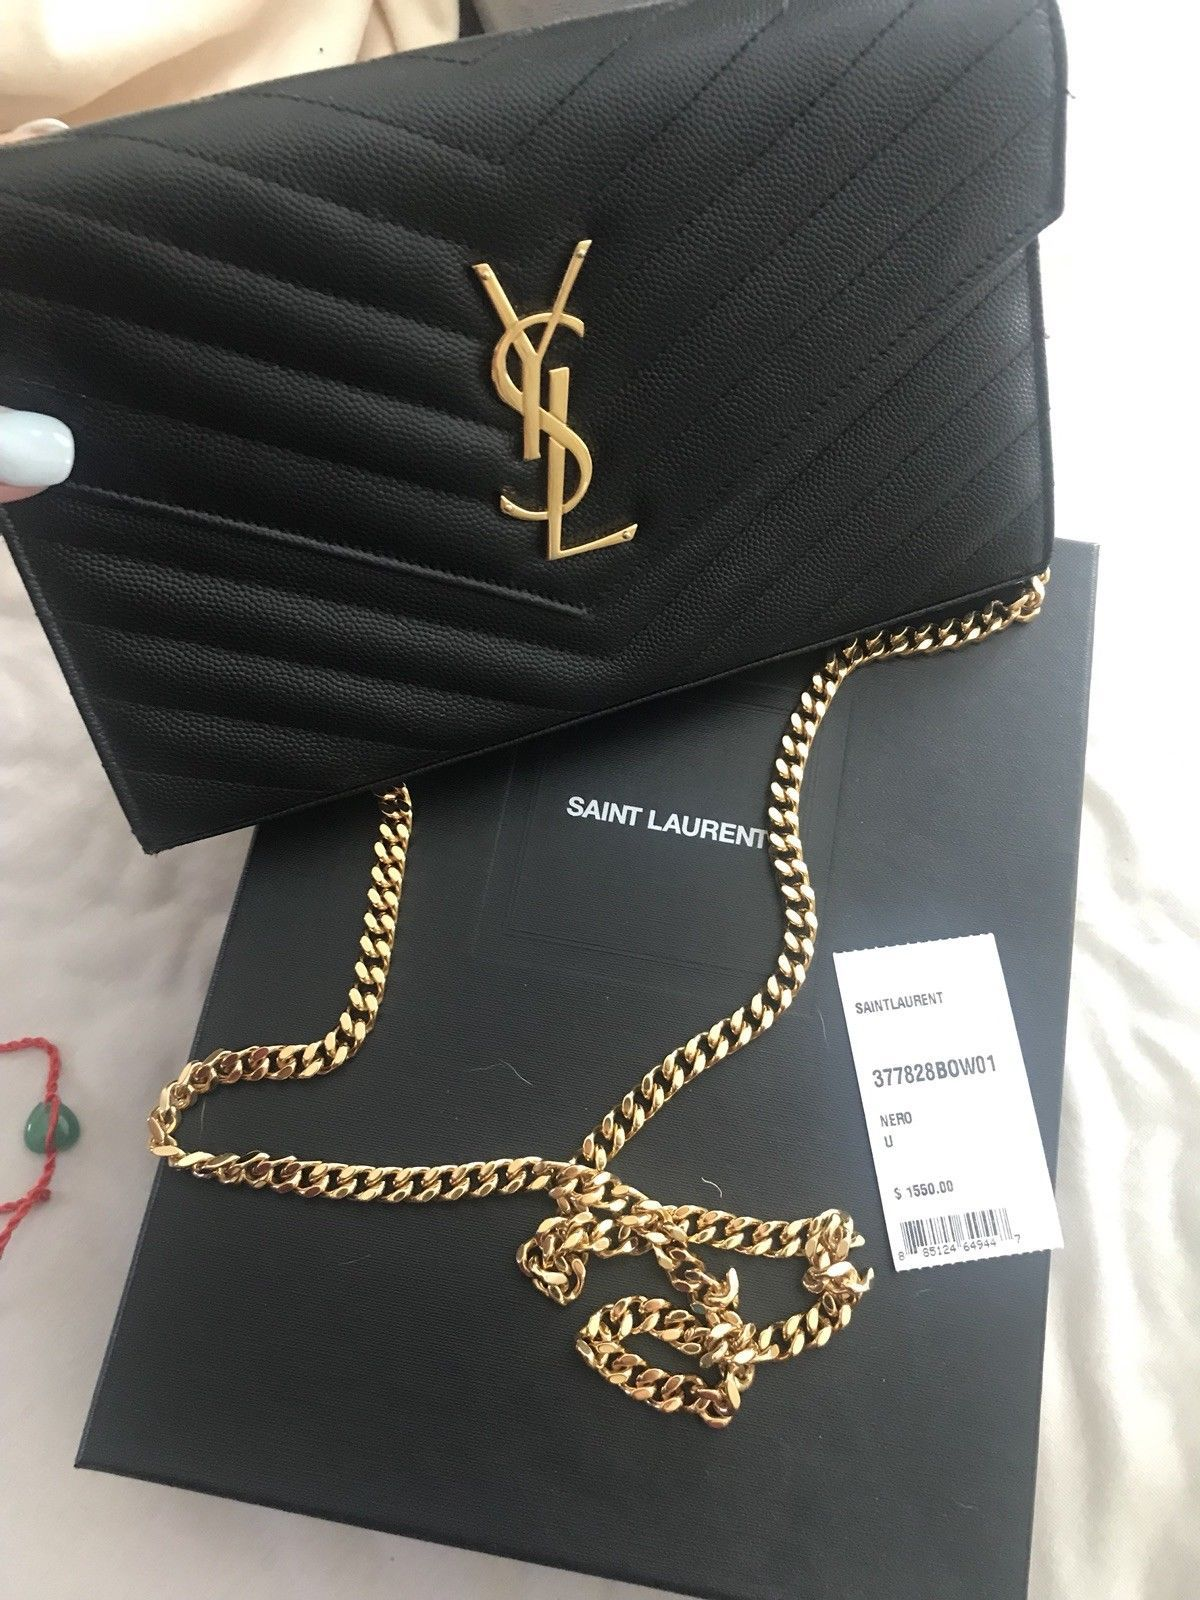 b6ebcfbc847 Yves Saint Laurent YSL Black Leather Monogram Wallet on Chain Crossbody